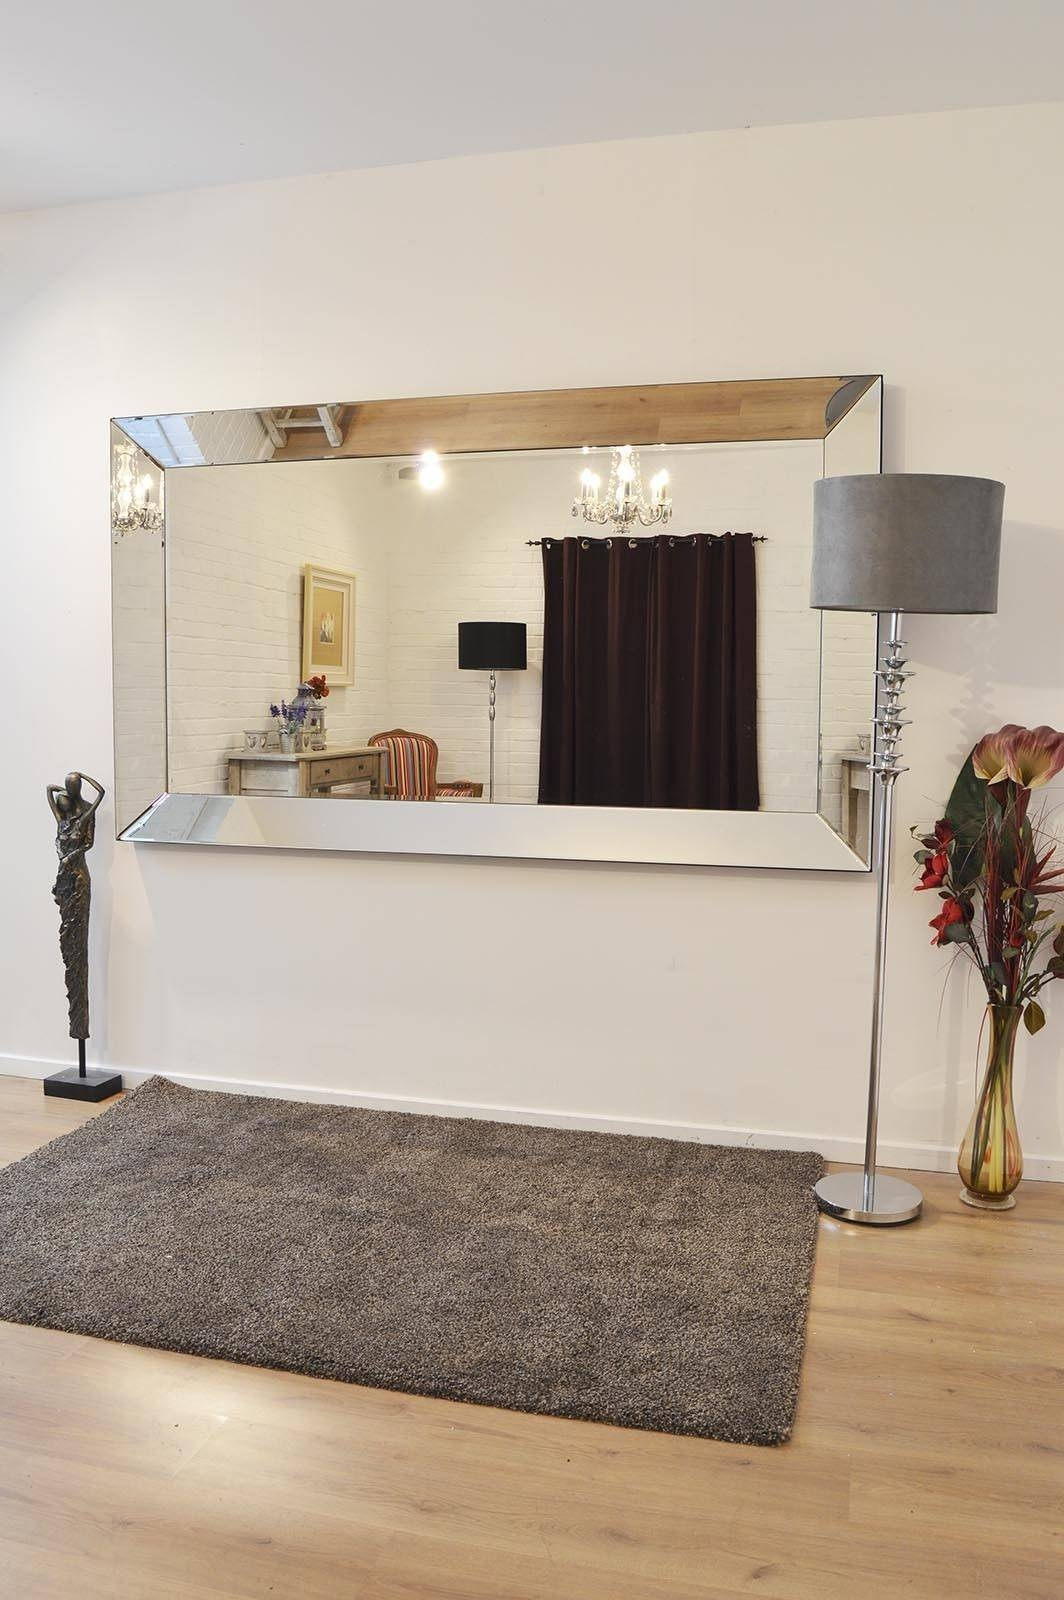 Lovely Design Large Designer Wall Mirrors Large Modern Mirror With in Modern Contemporary Wall Mirrors (Image 10 of 15)